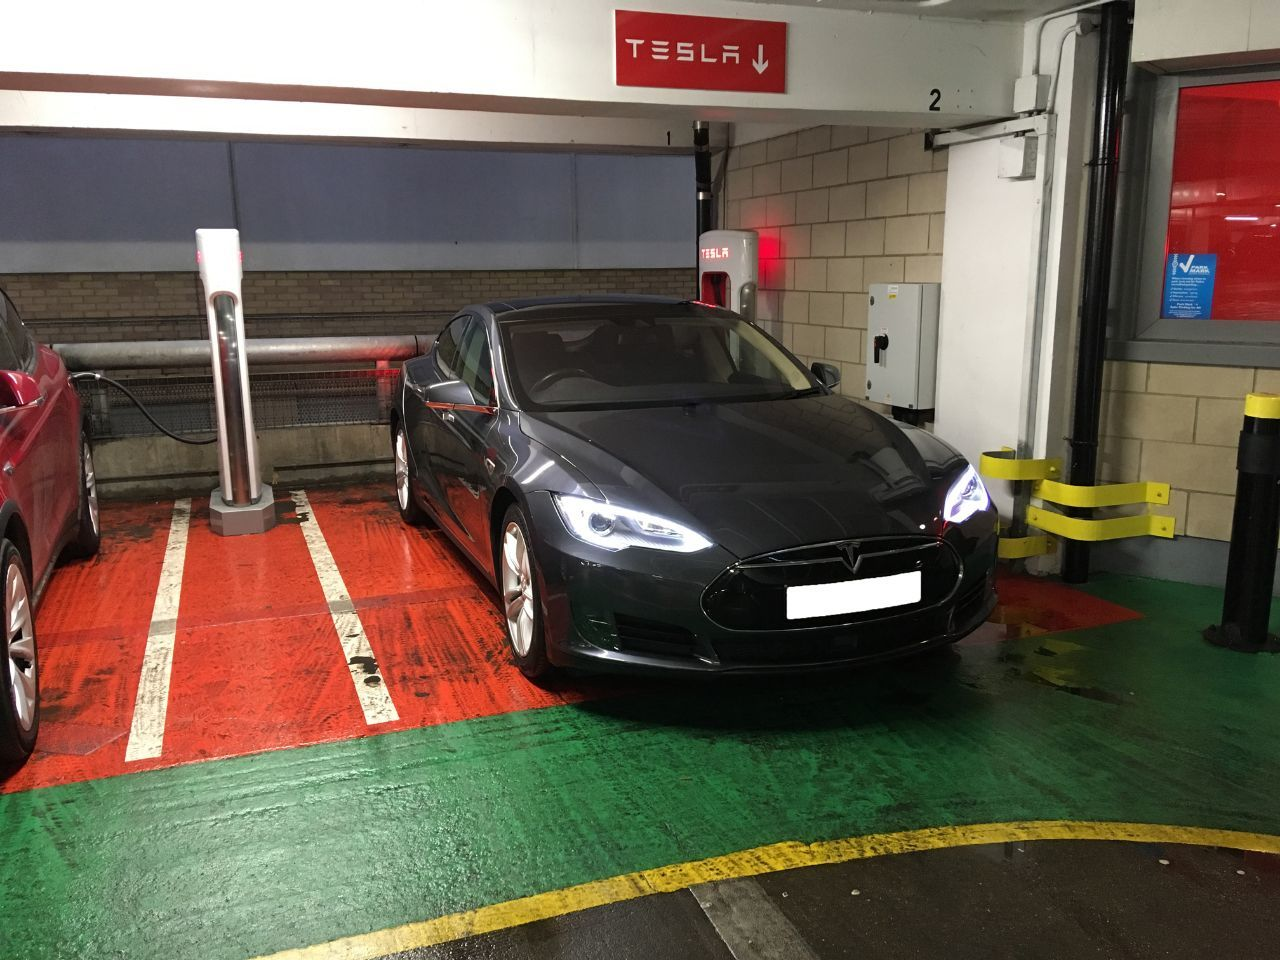 Tesla Model S 70 Saloon Electric Metallic Grey